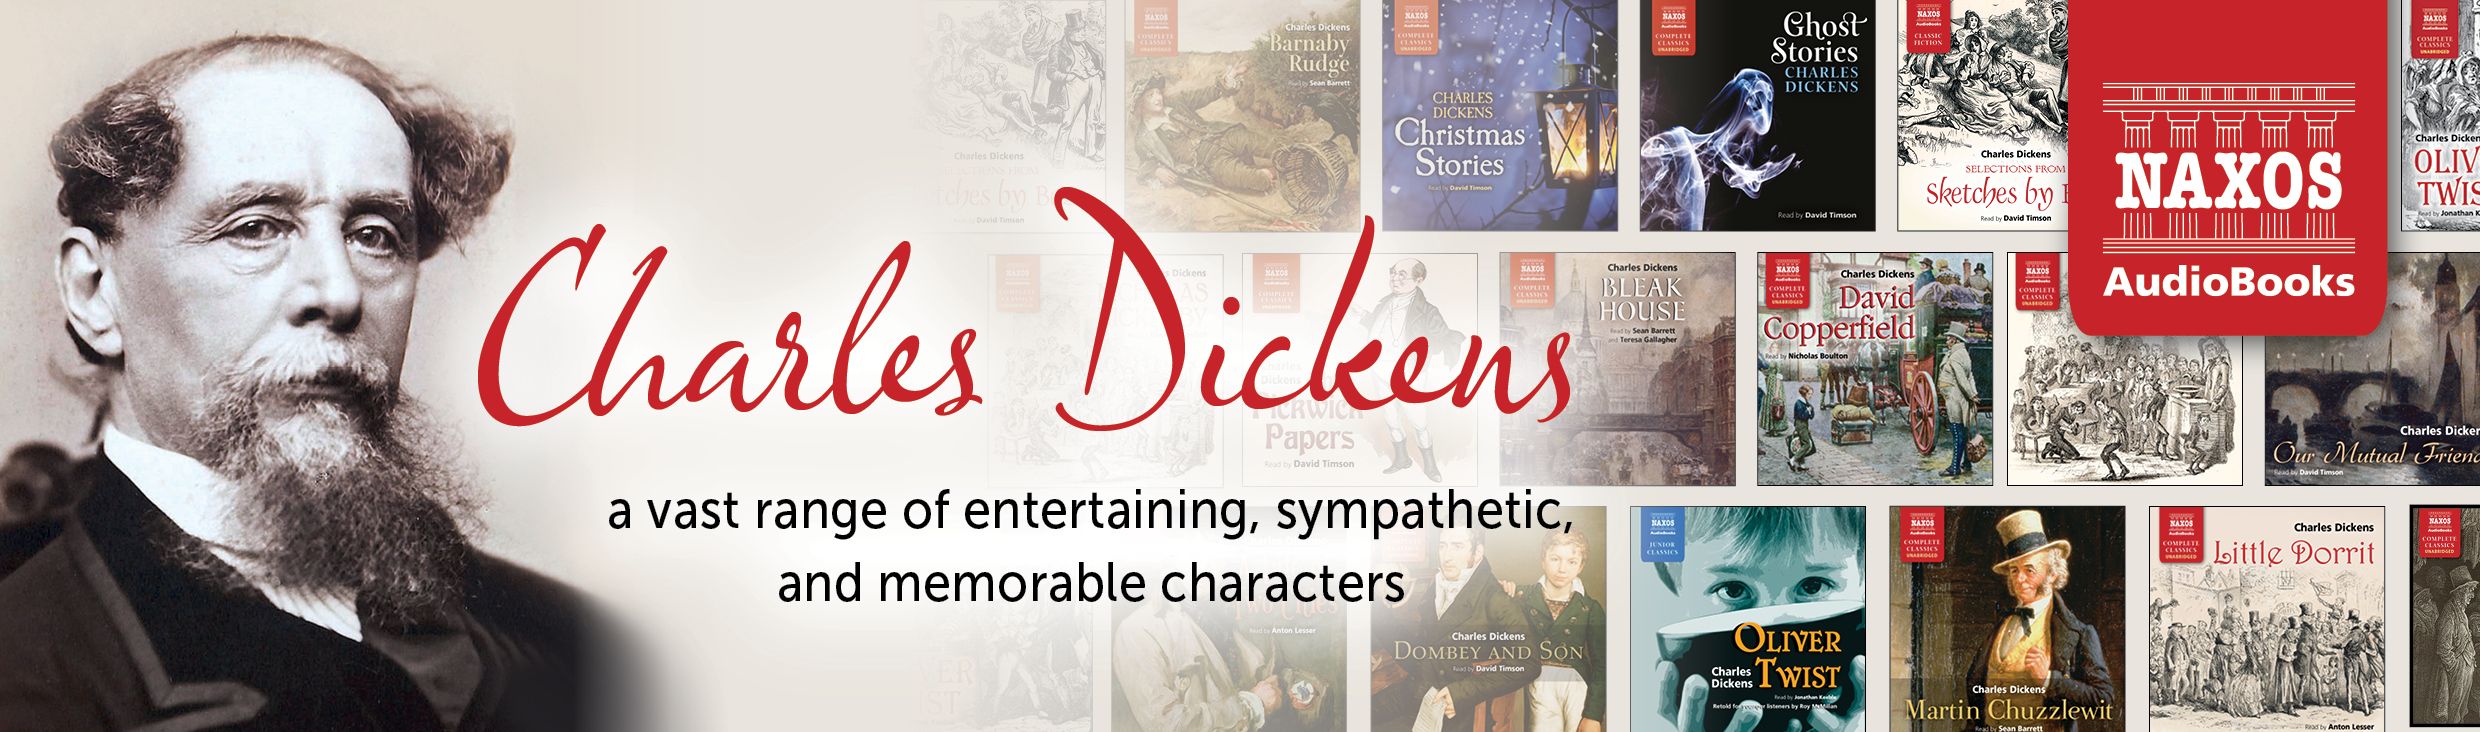 Dickens catalogue banner